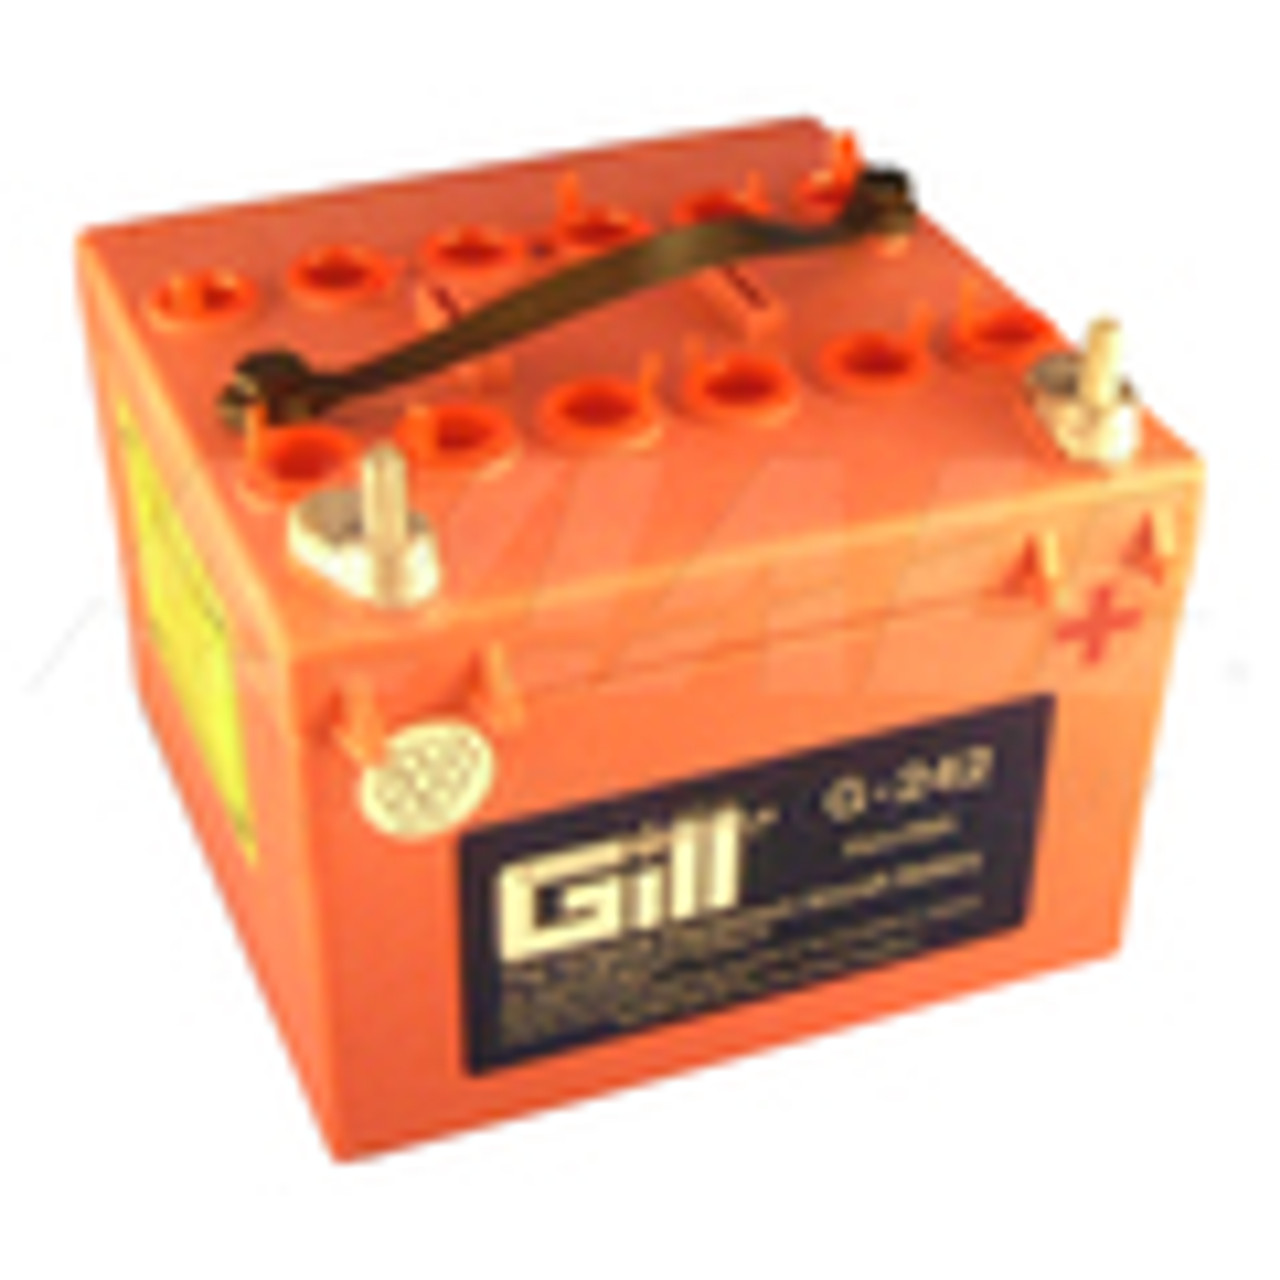 Gill® Batteries are the original equipment aircraft battery. They offer the better performing sealed lead acid battery that is fast becoming the choice in a growing list of airframe manufacturers.   Features:  Sealed, Non-Spillable Assembled with electrodes (plates) that have been fully charged and dried Improved case-cover seal Heavy-duty internal post Weight: 27lbs Electrolyte: 3 Qts./ 1.285 s.g Capacity: 1 hr (C1) 10 Ipp: 30 min (2C) 17 Ipr: 60 sec/0 deg F (CCA) 150